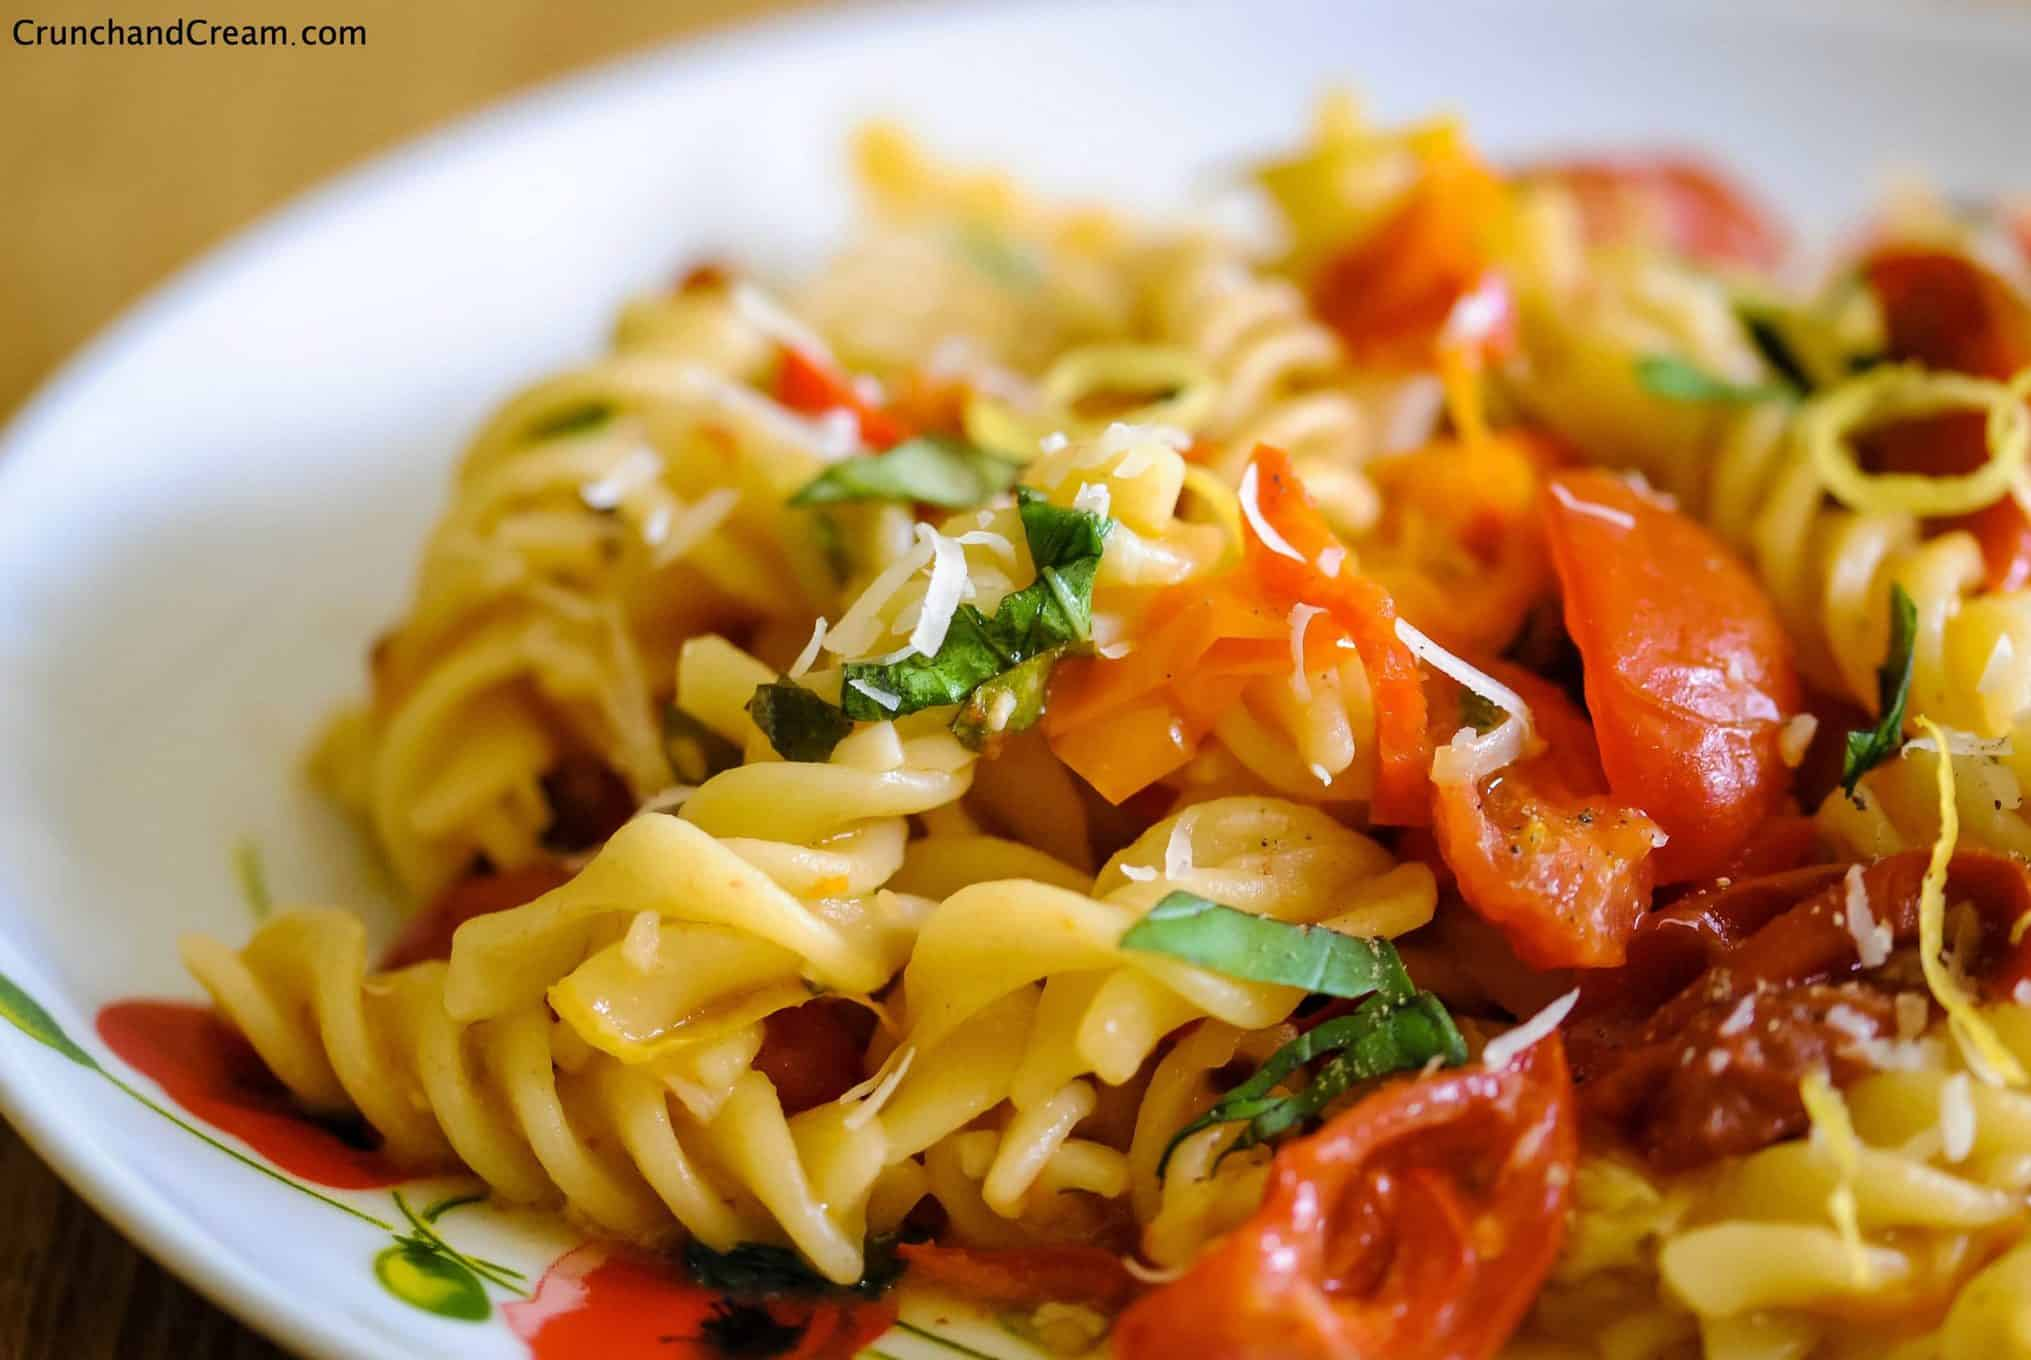 close-up eye-level photo of a plate of fusilli pasta cooked with fresh tomatoes and chilli peppers, topped with lemon zest and chopped fresh herbs